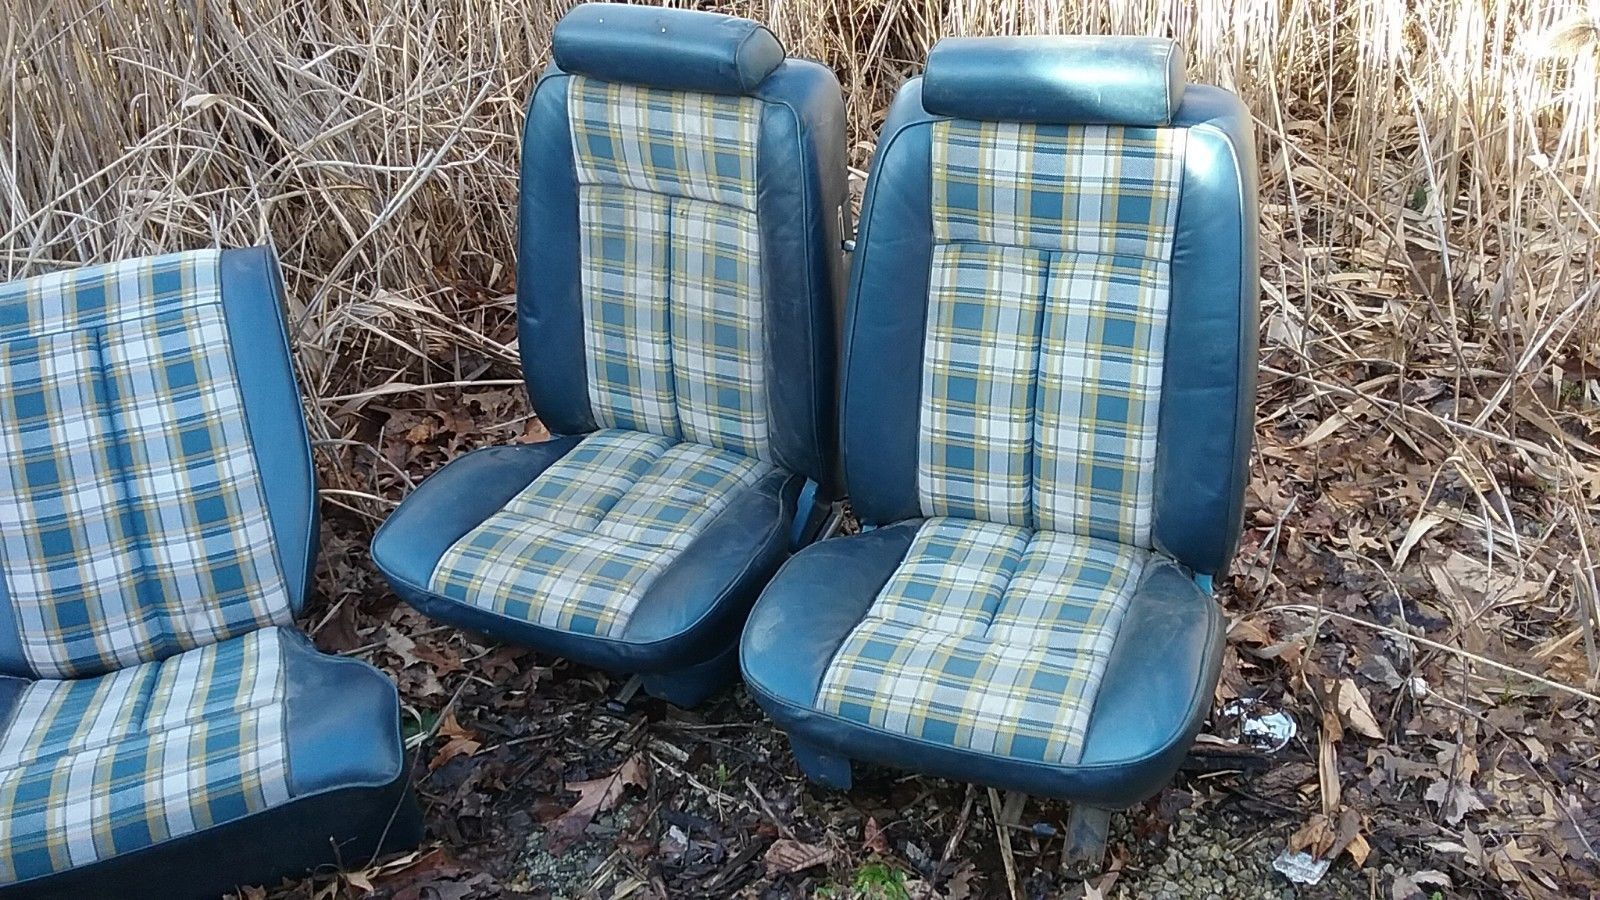 This Is A Very Hard To Find Front And Back Seats Out Of A 1972